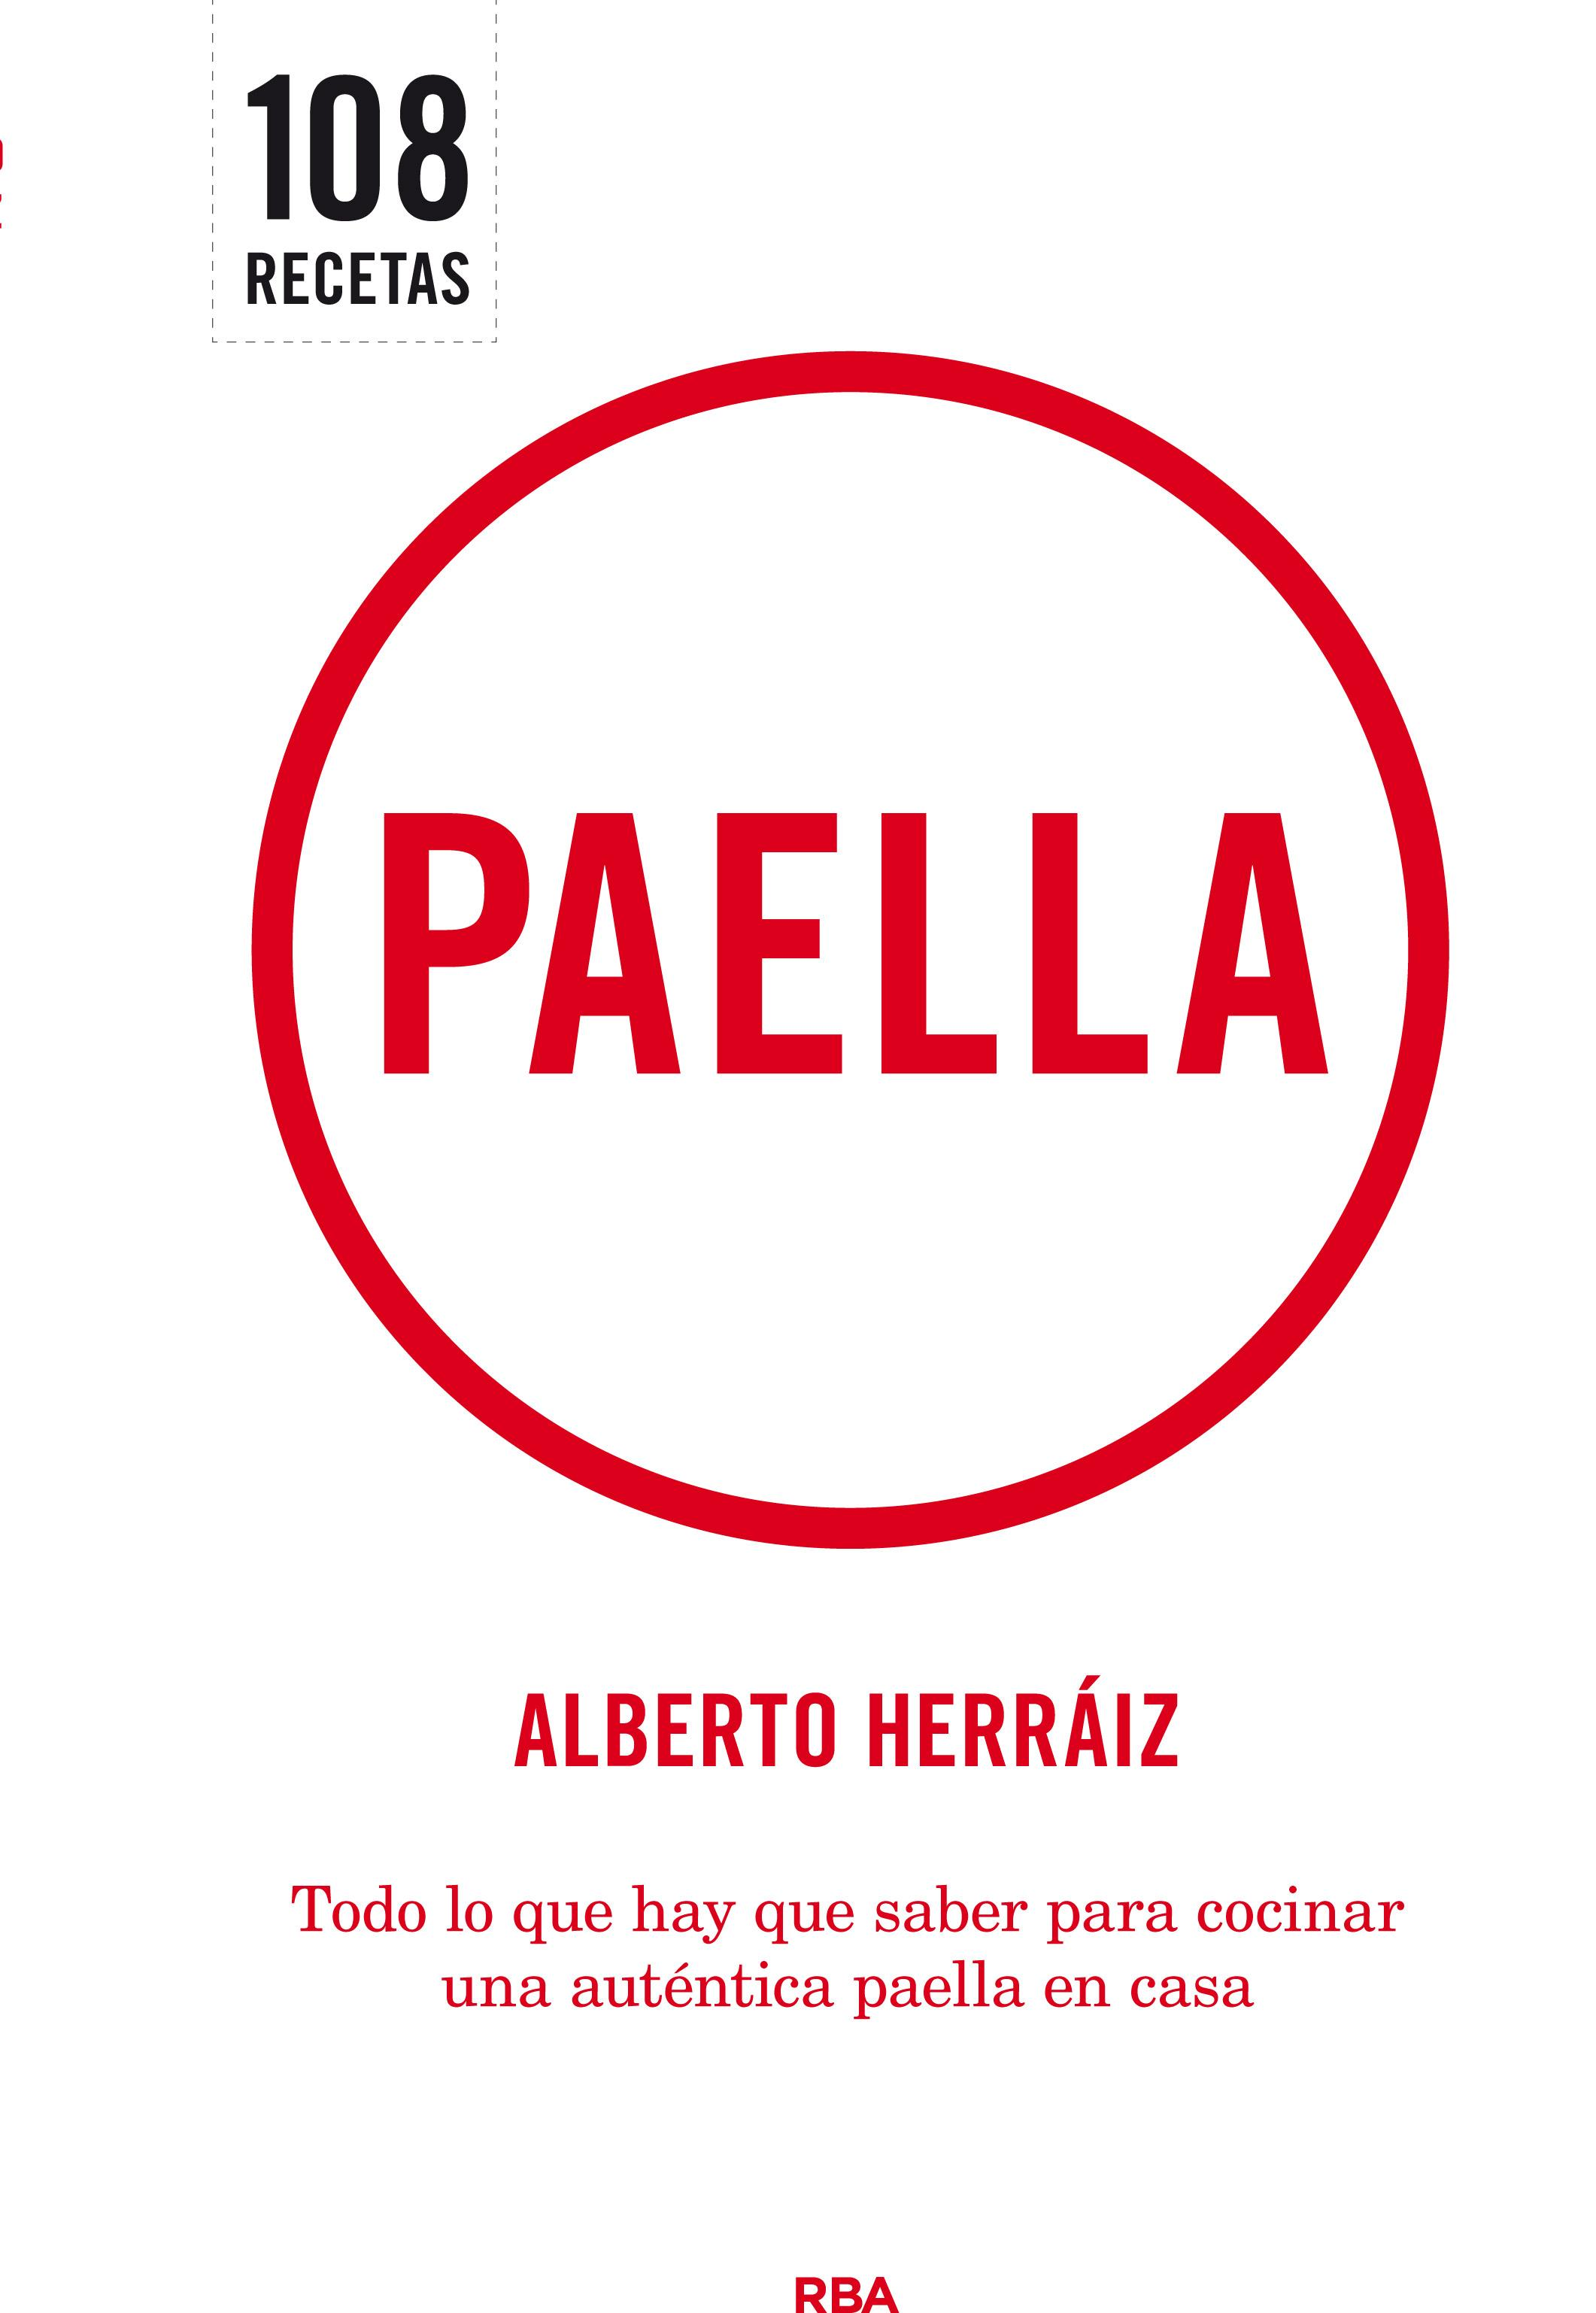 Paella, y arroces - $20.900